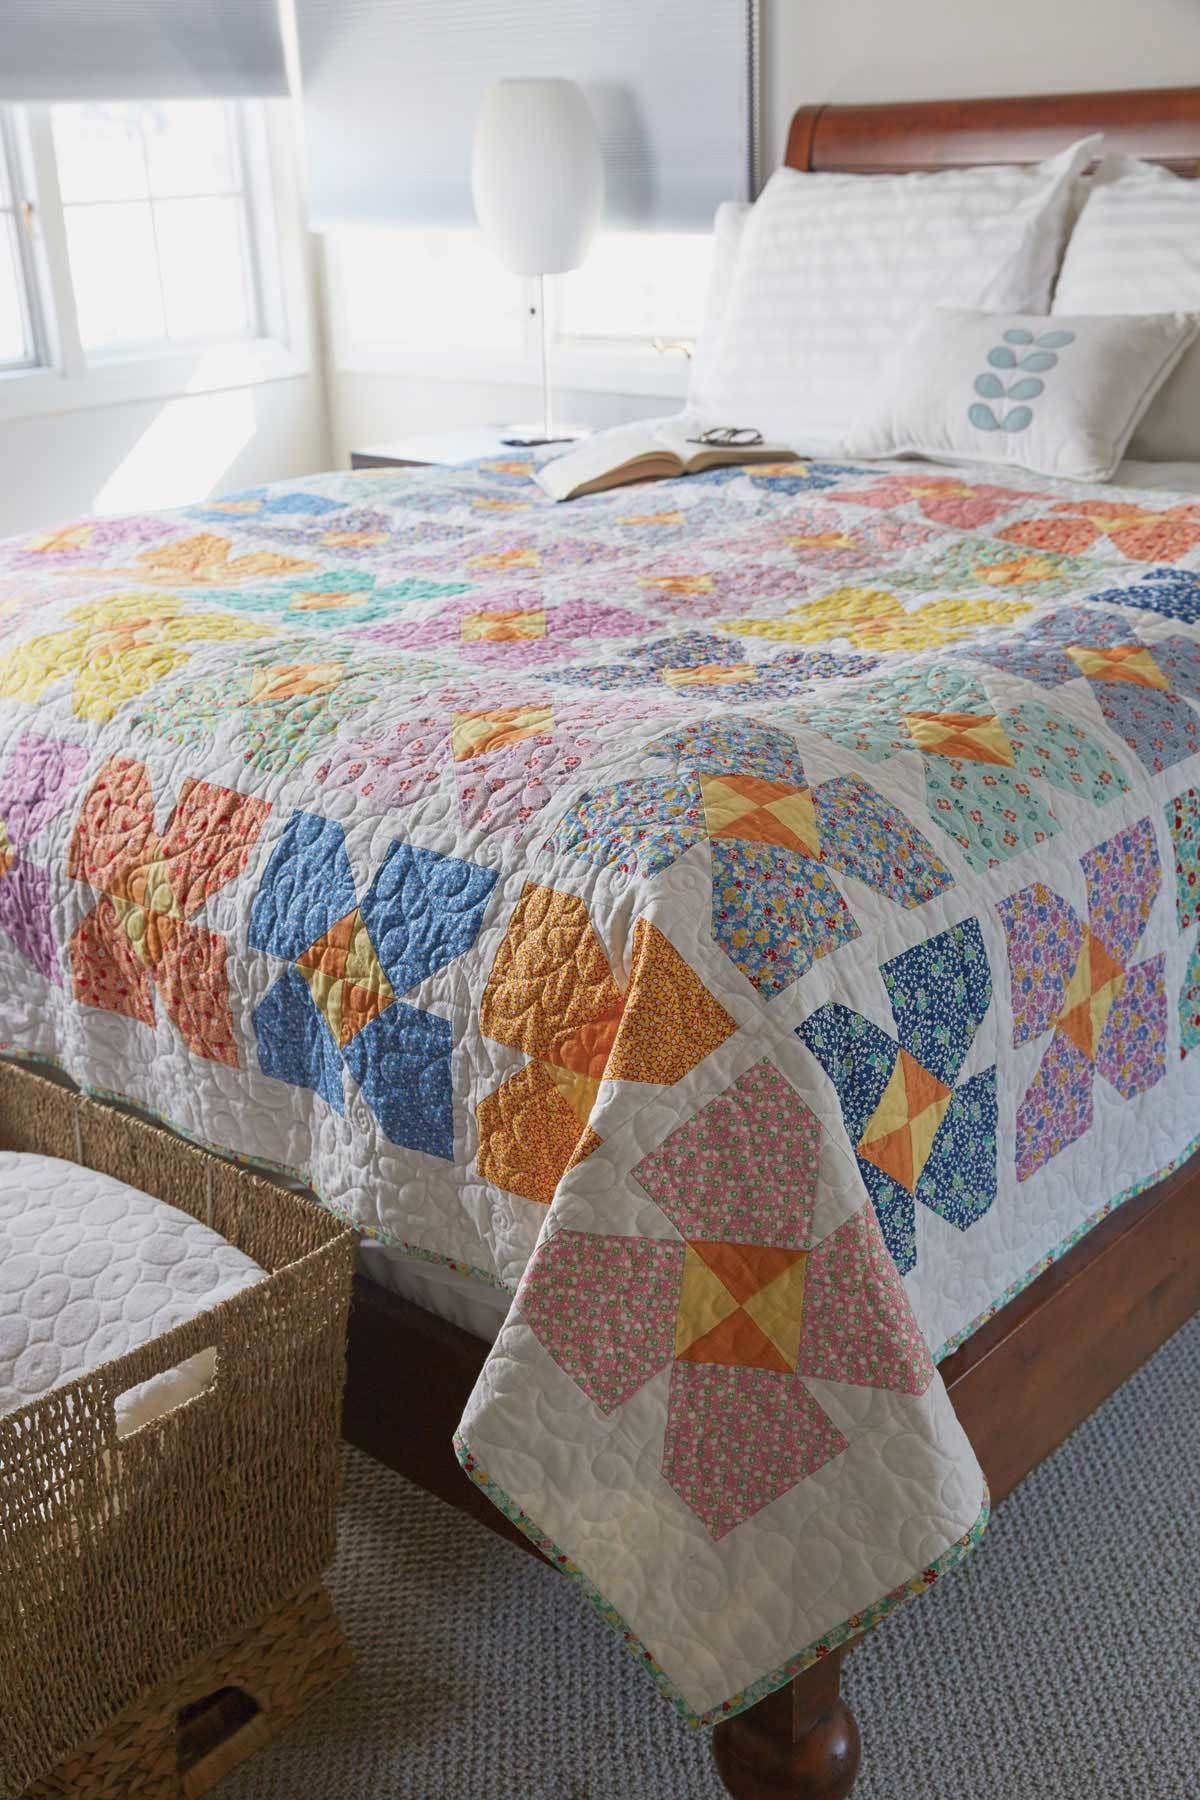 About Fons Amp Porter A Division Of Quilt Kits Quilt